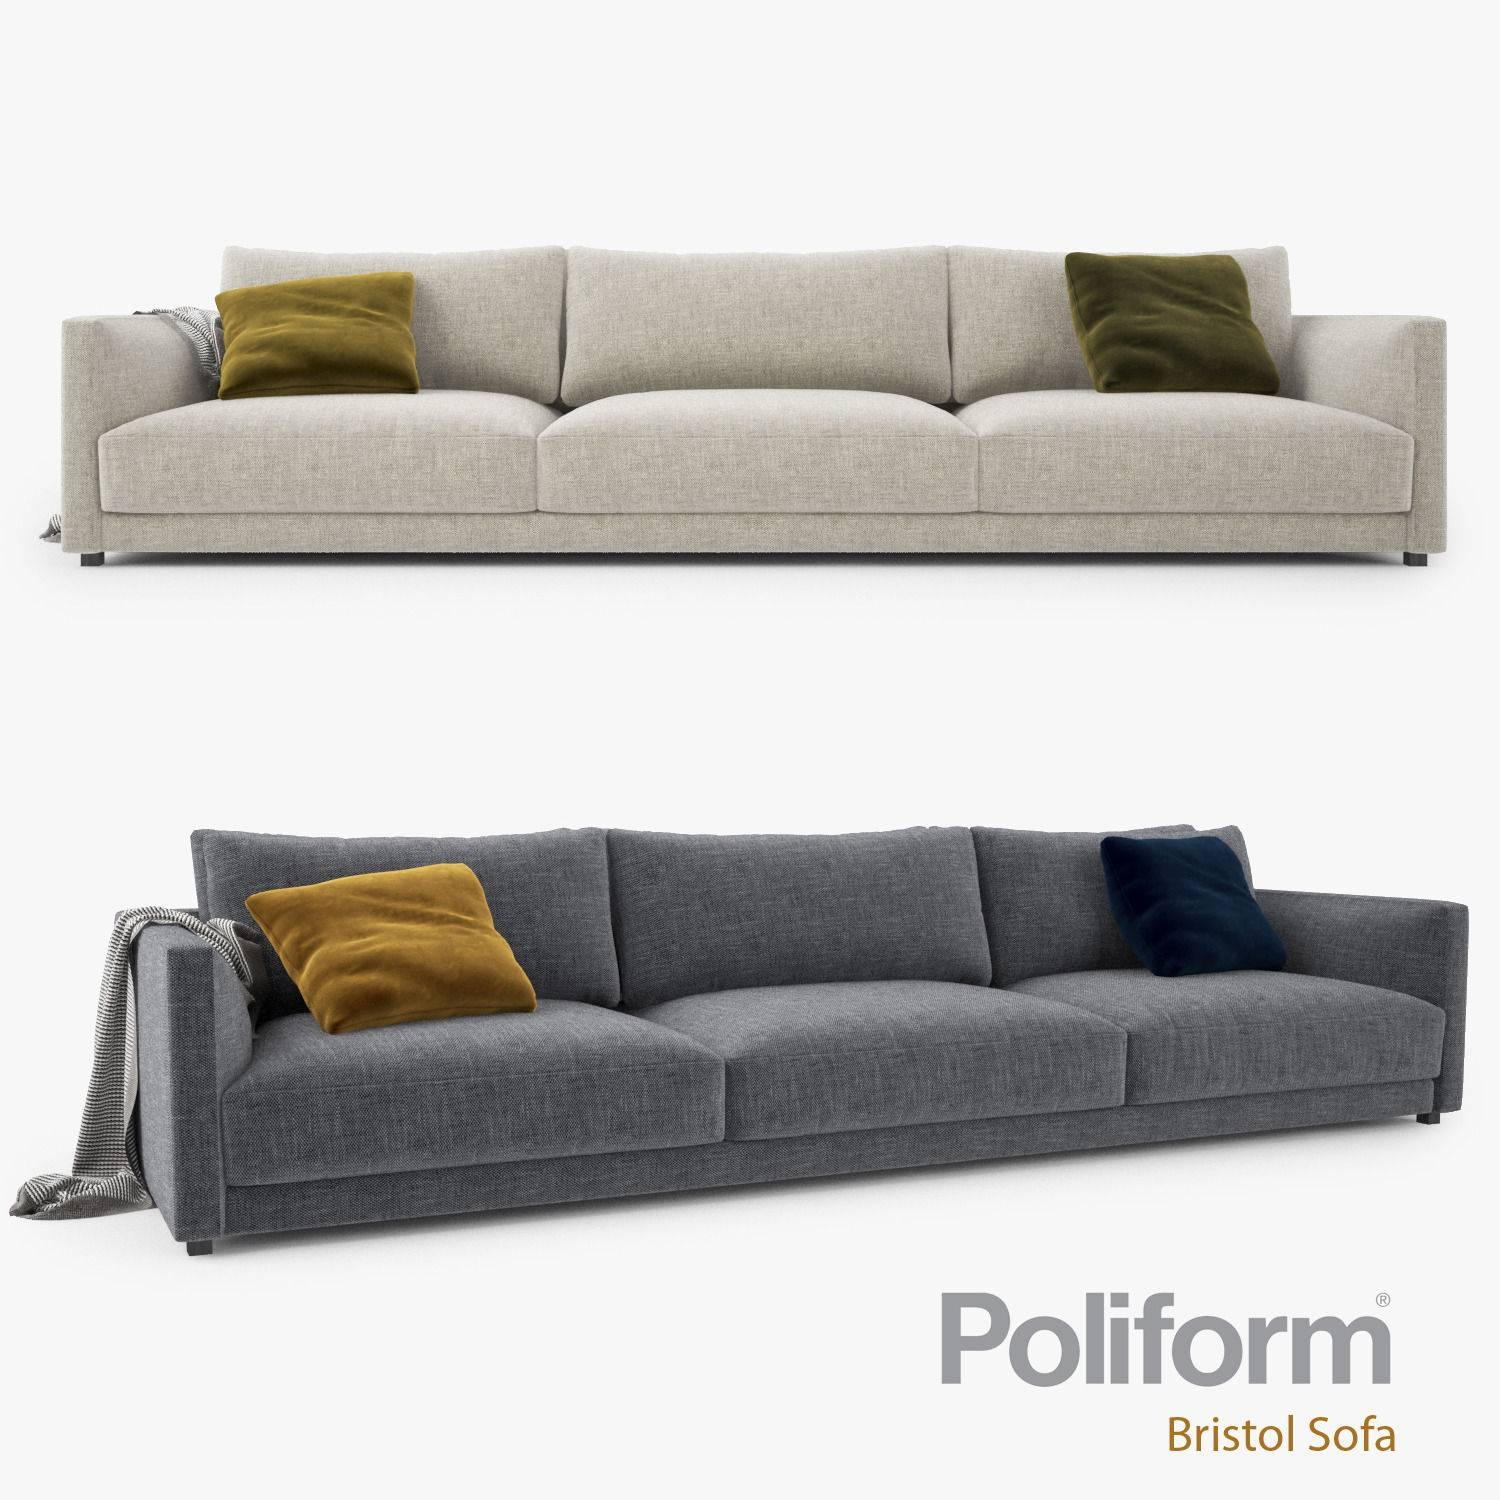 Poliform Bristol Three Seater Sofa 3D Model Max Obj Fbx Mtl intended for Bristol Sofas (Image 16 of 30)